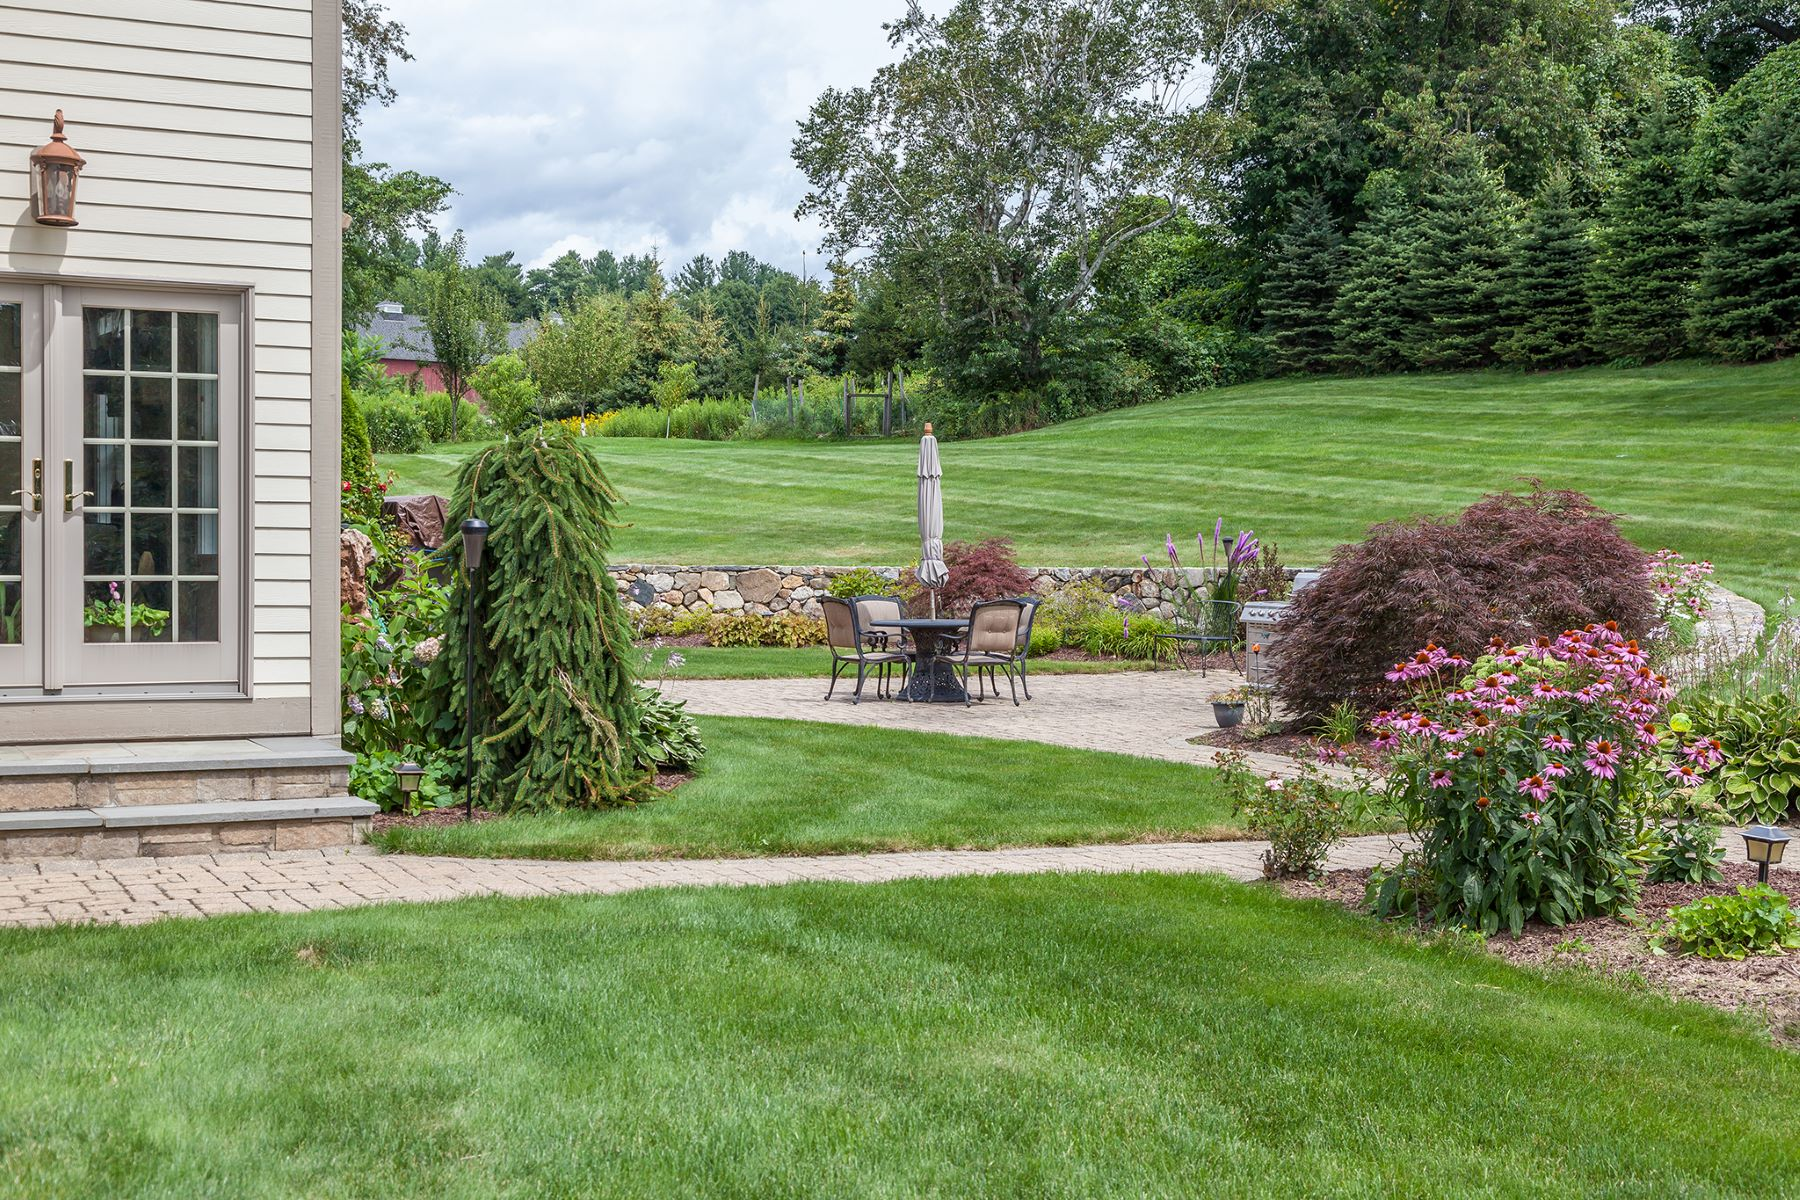 Additional photo for property listing at Luxurious Residence on 6 Acres 22 Carriage Lane Litchfield, Connecticut 06759 United States